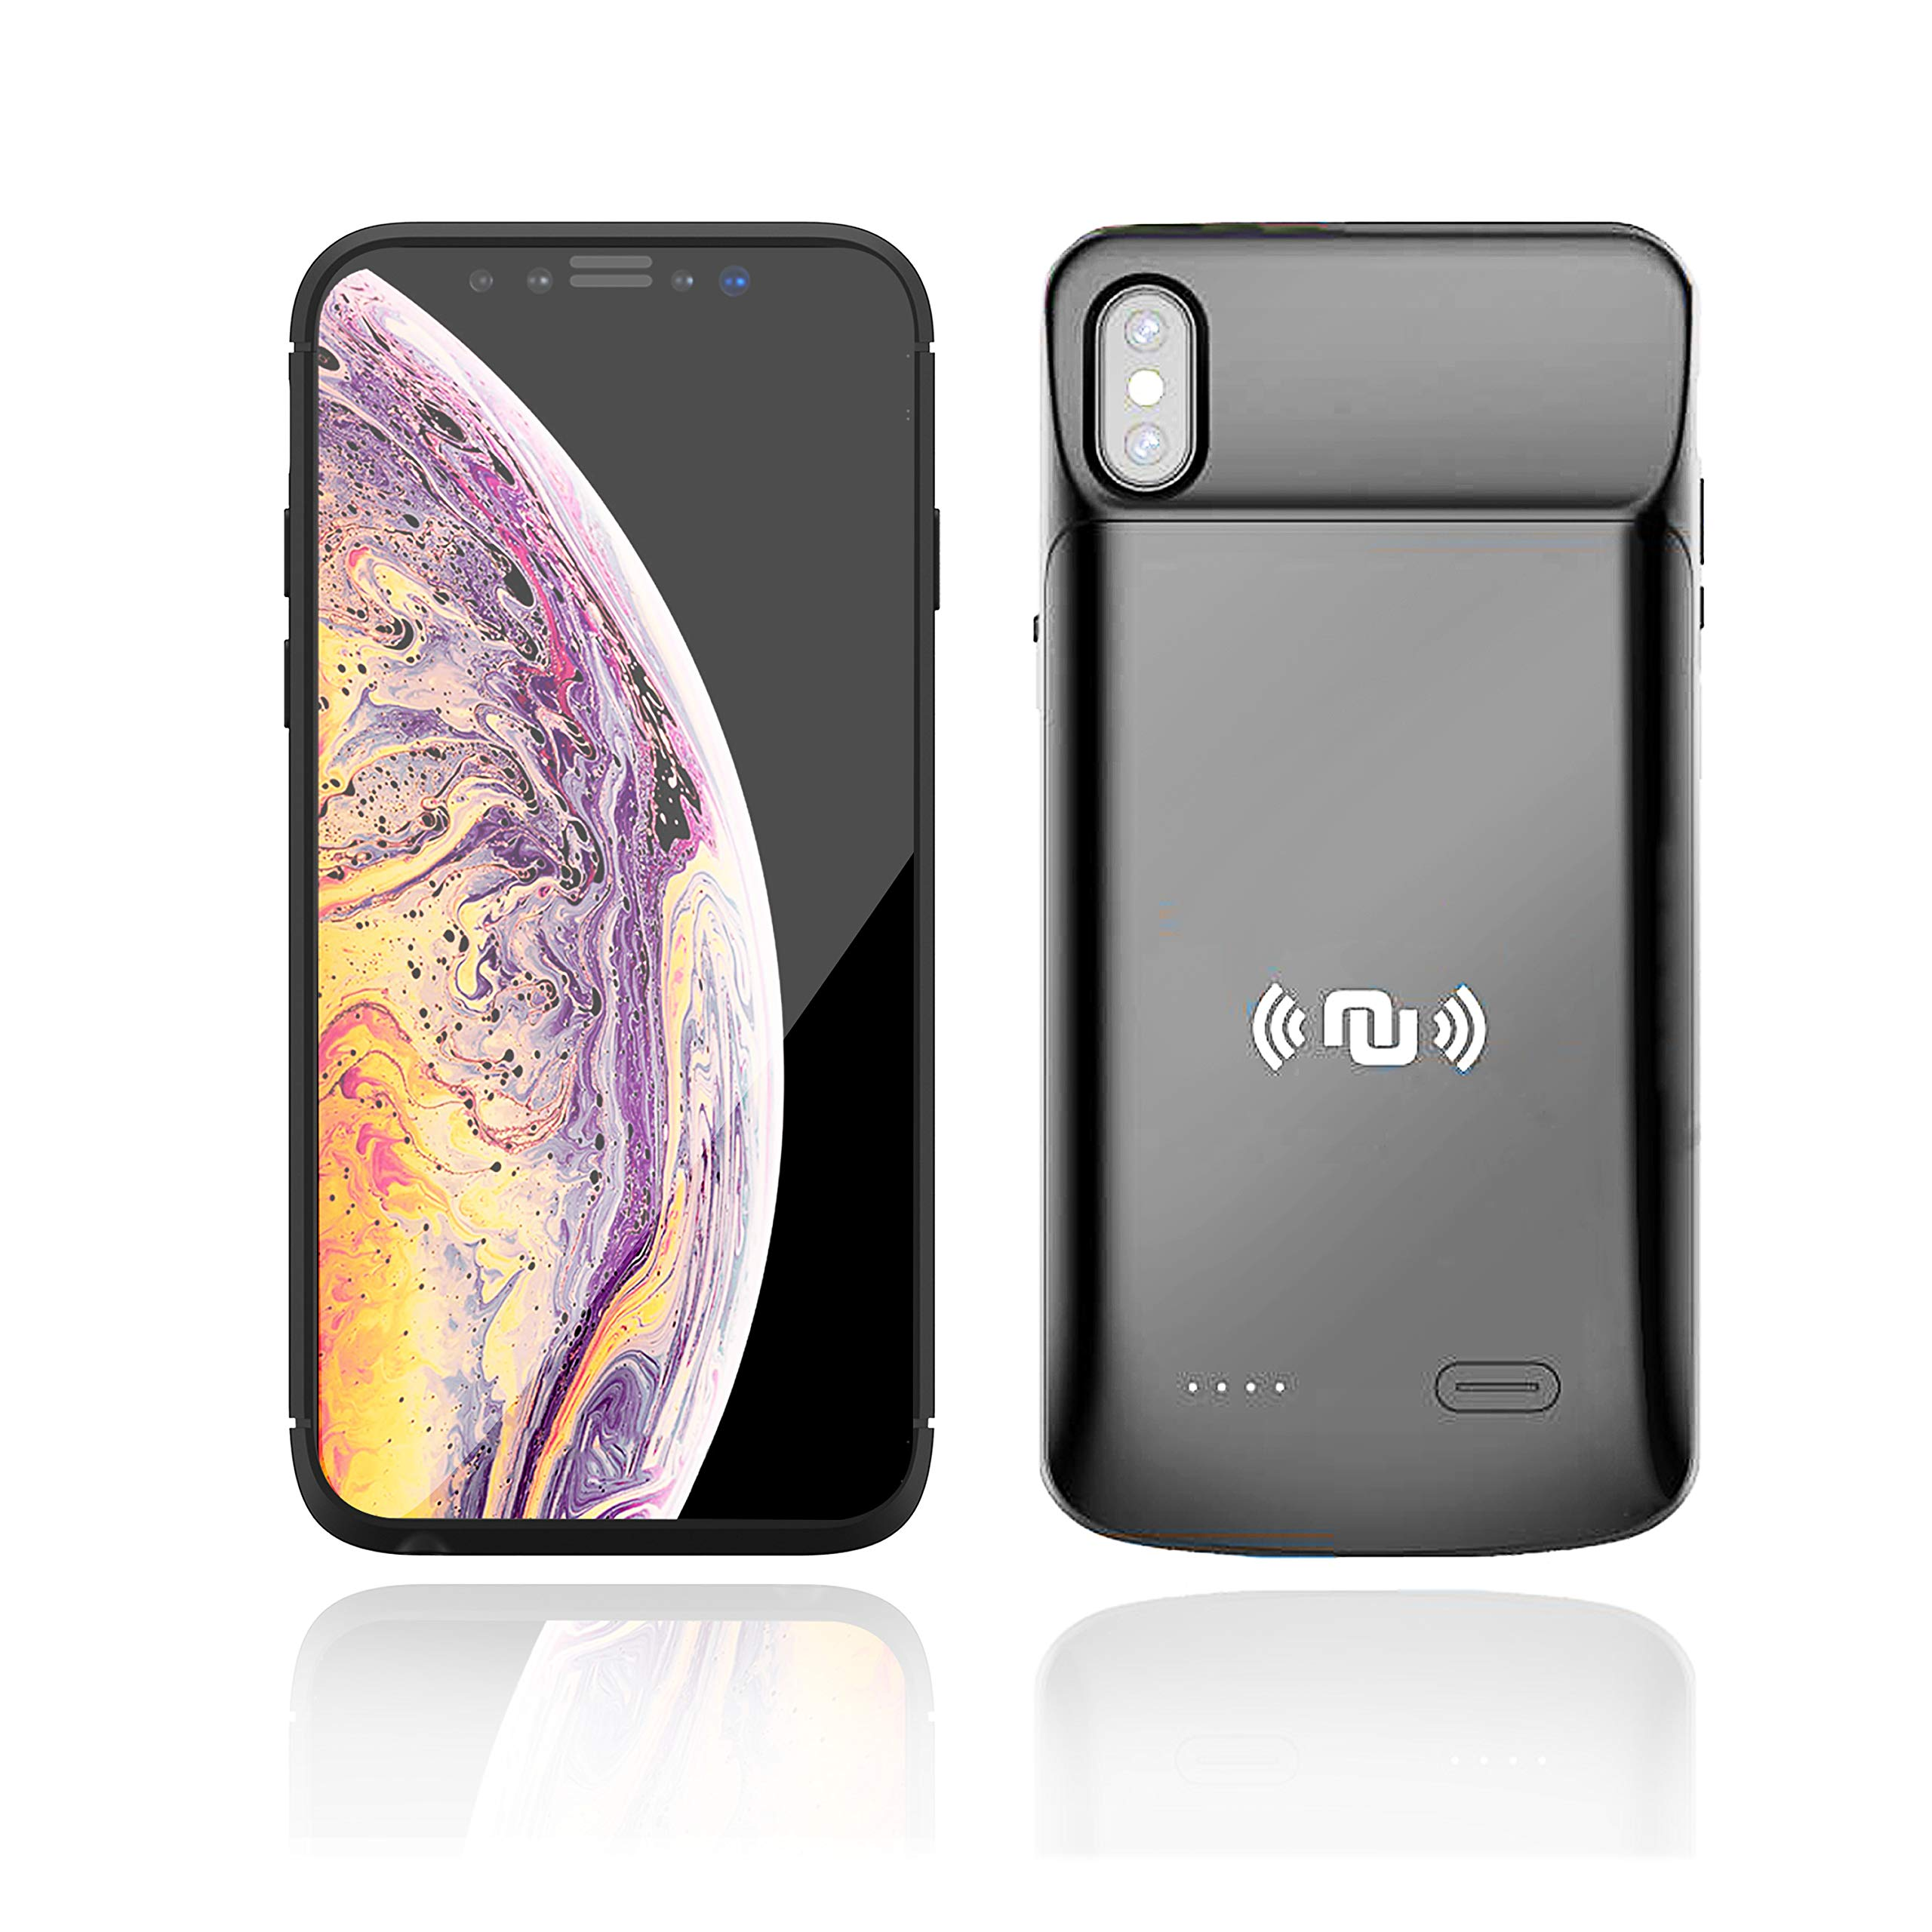 Funda Con Bateria de 6000mah para Apple Iphone Xs Max NUNET [7SM8P5FT]